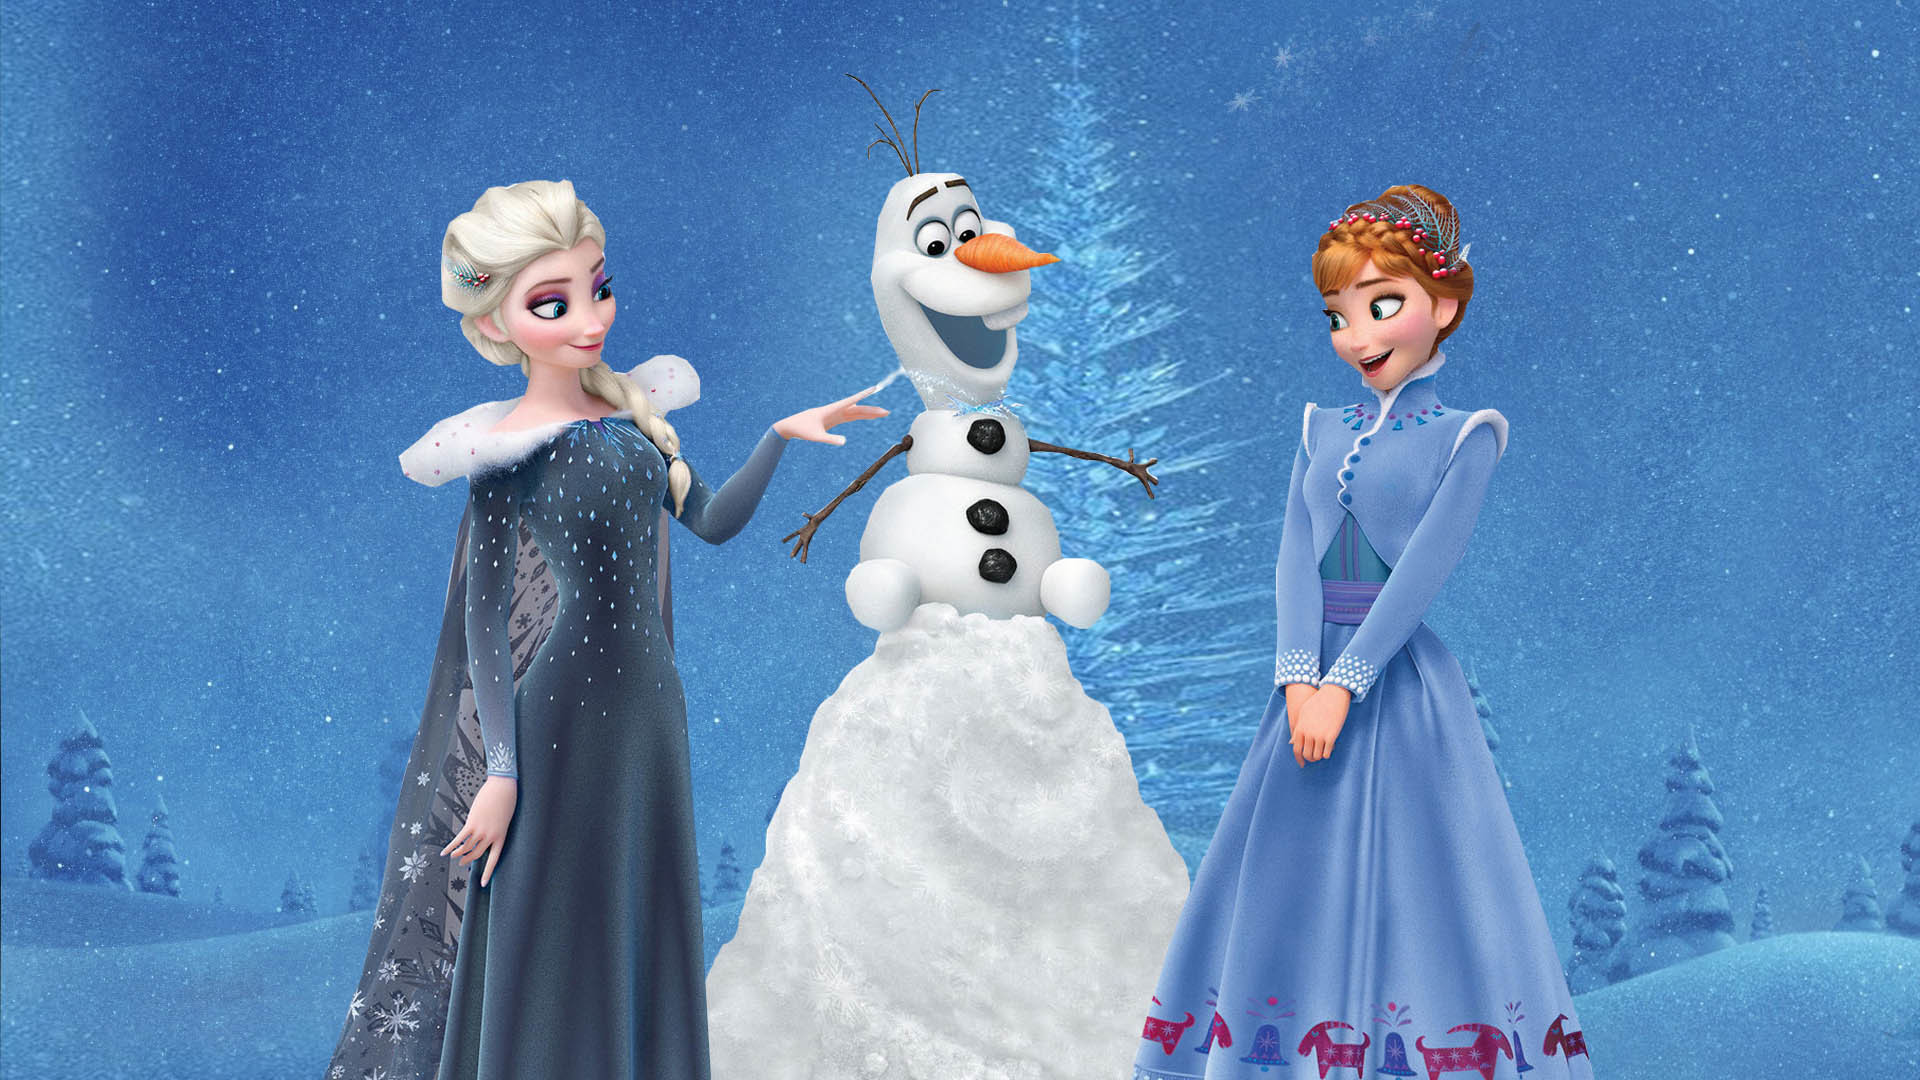 Res: 1920x1080, Frozen Christmas wallpaper ...